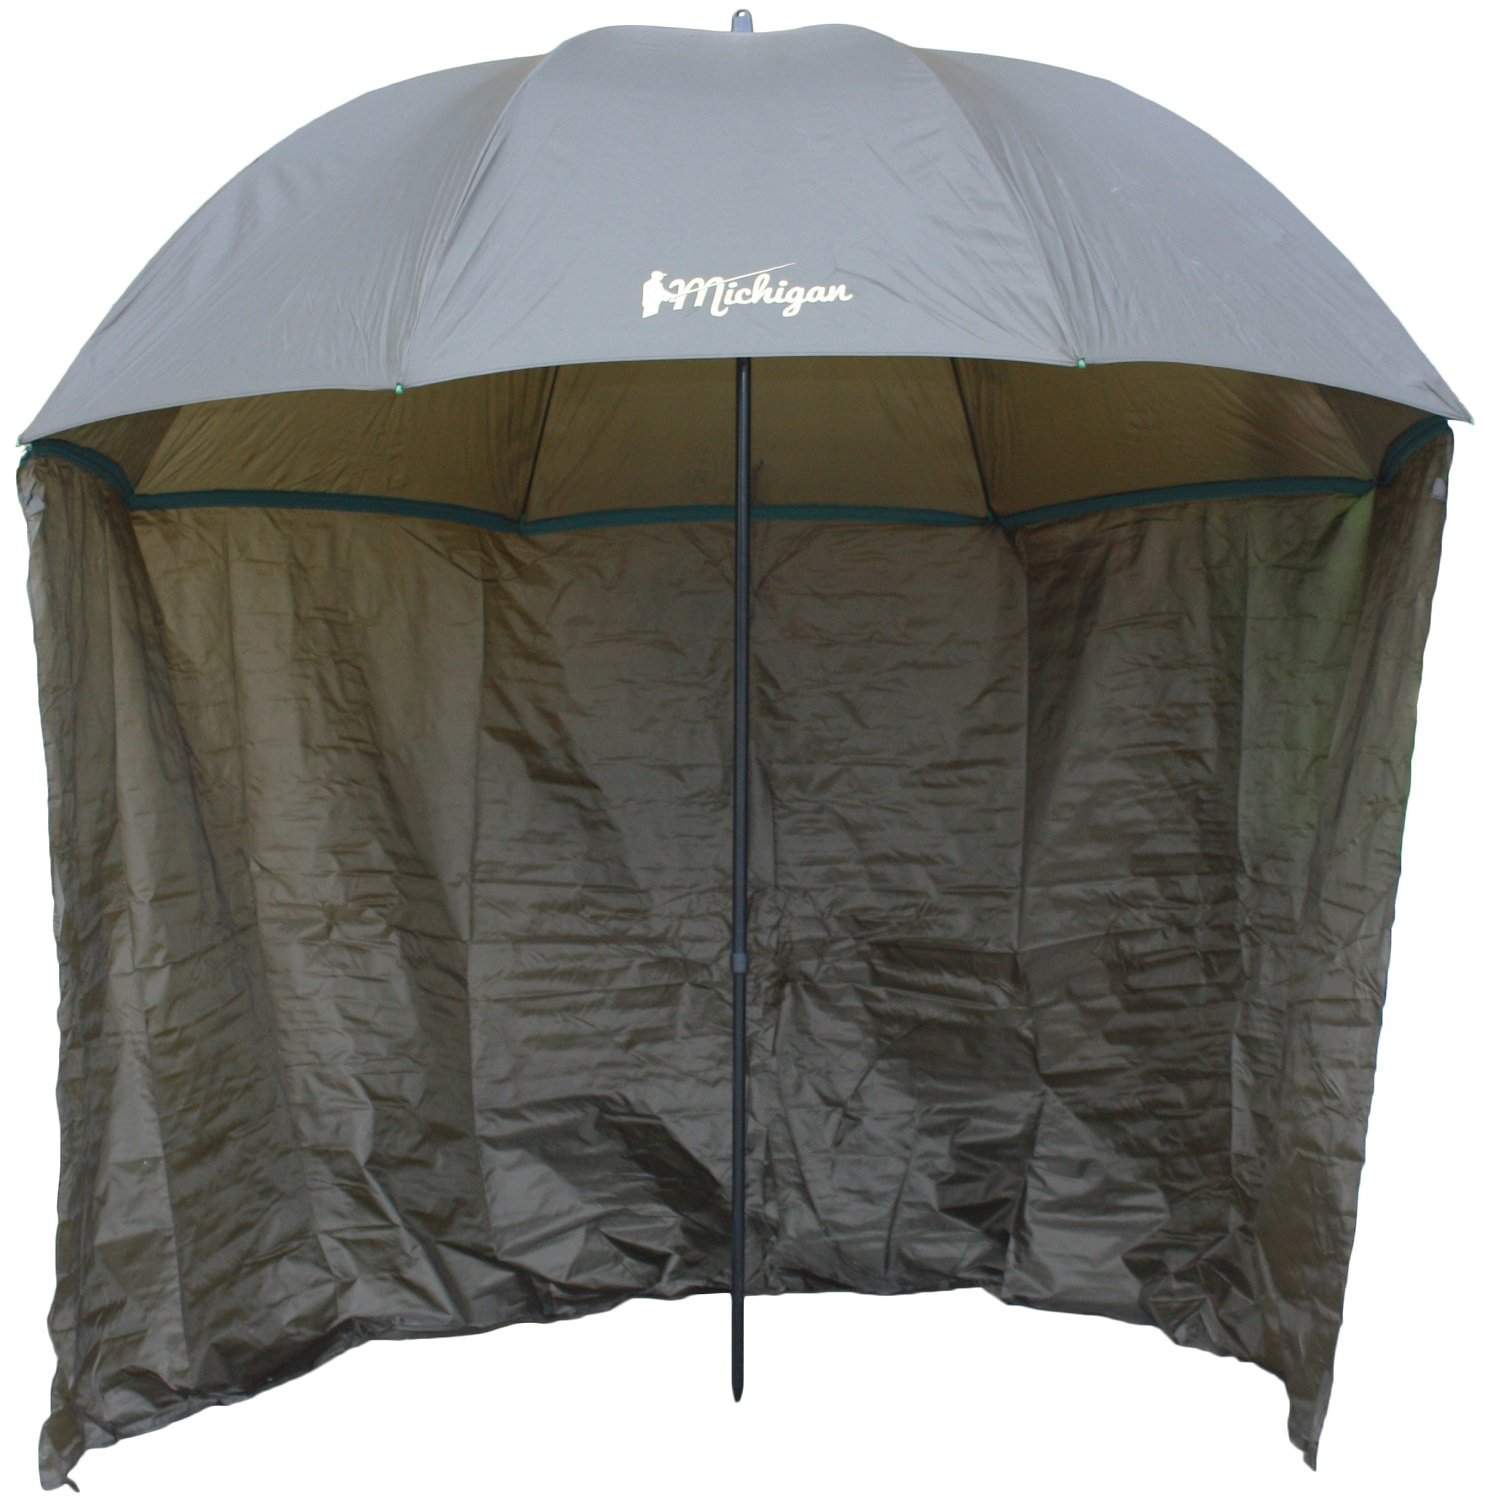 "Michigan Fishing Umbrella with Top Tilt and Sides Brolly Shelter with FREE Carry Bag, Olive Green, 50"", 60"", 75"" or 86"" 1"